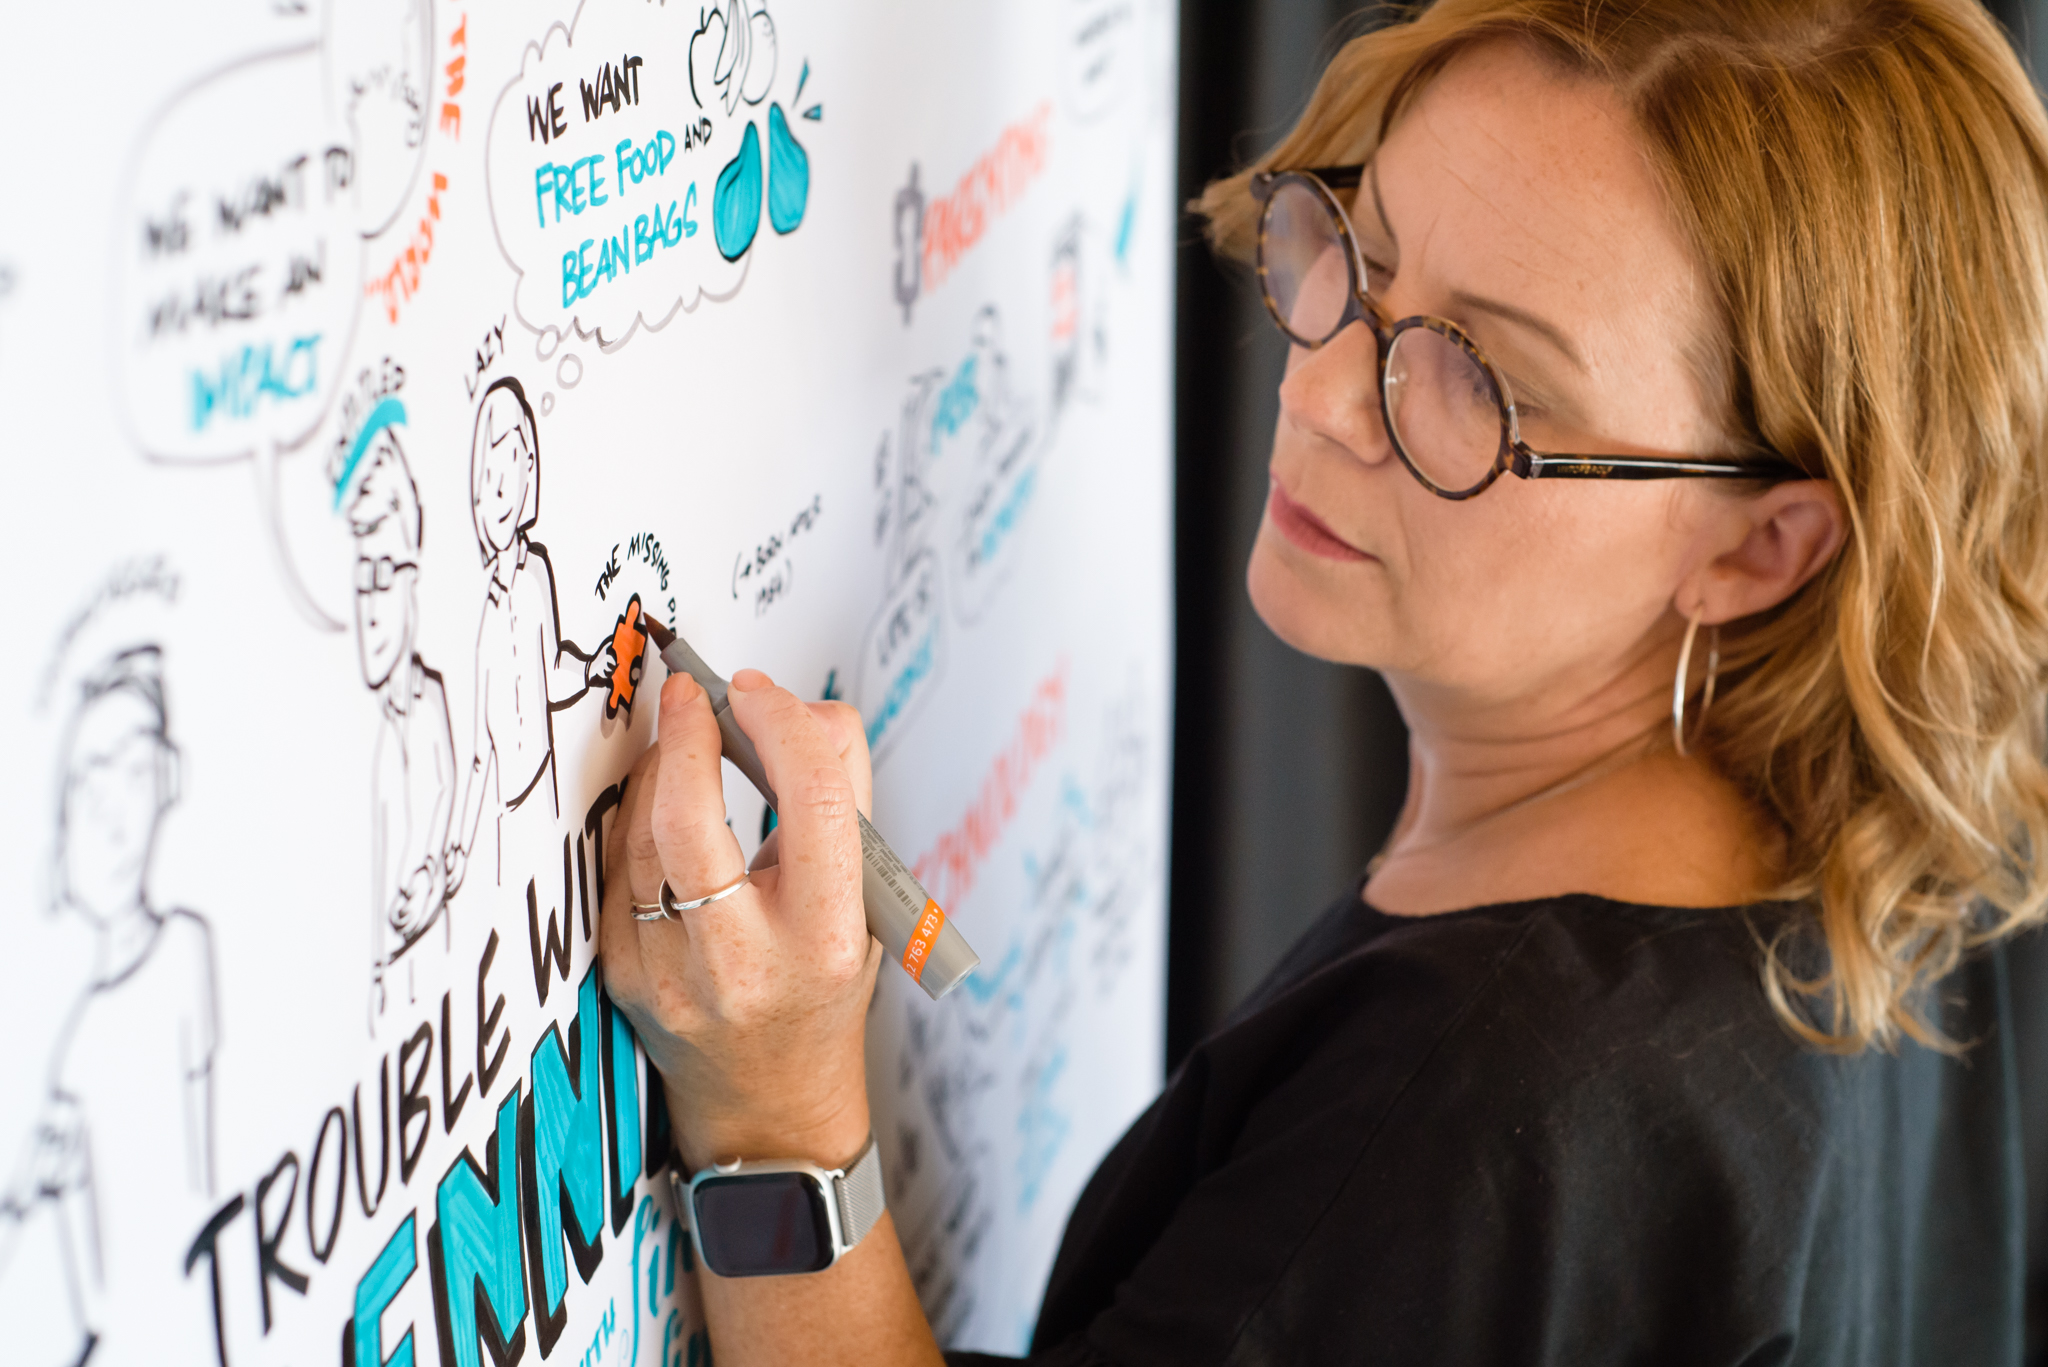 Debbie Wood – graphic recording analog style at the wall